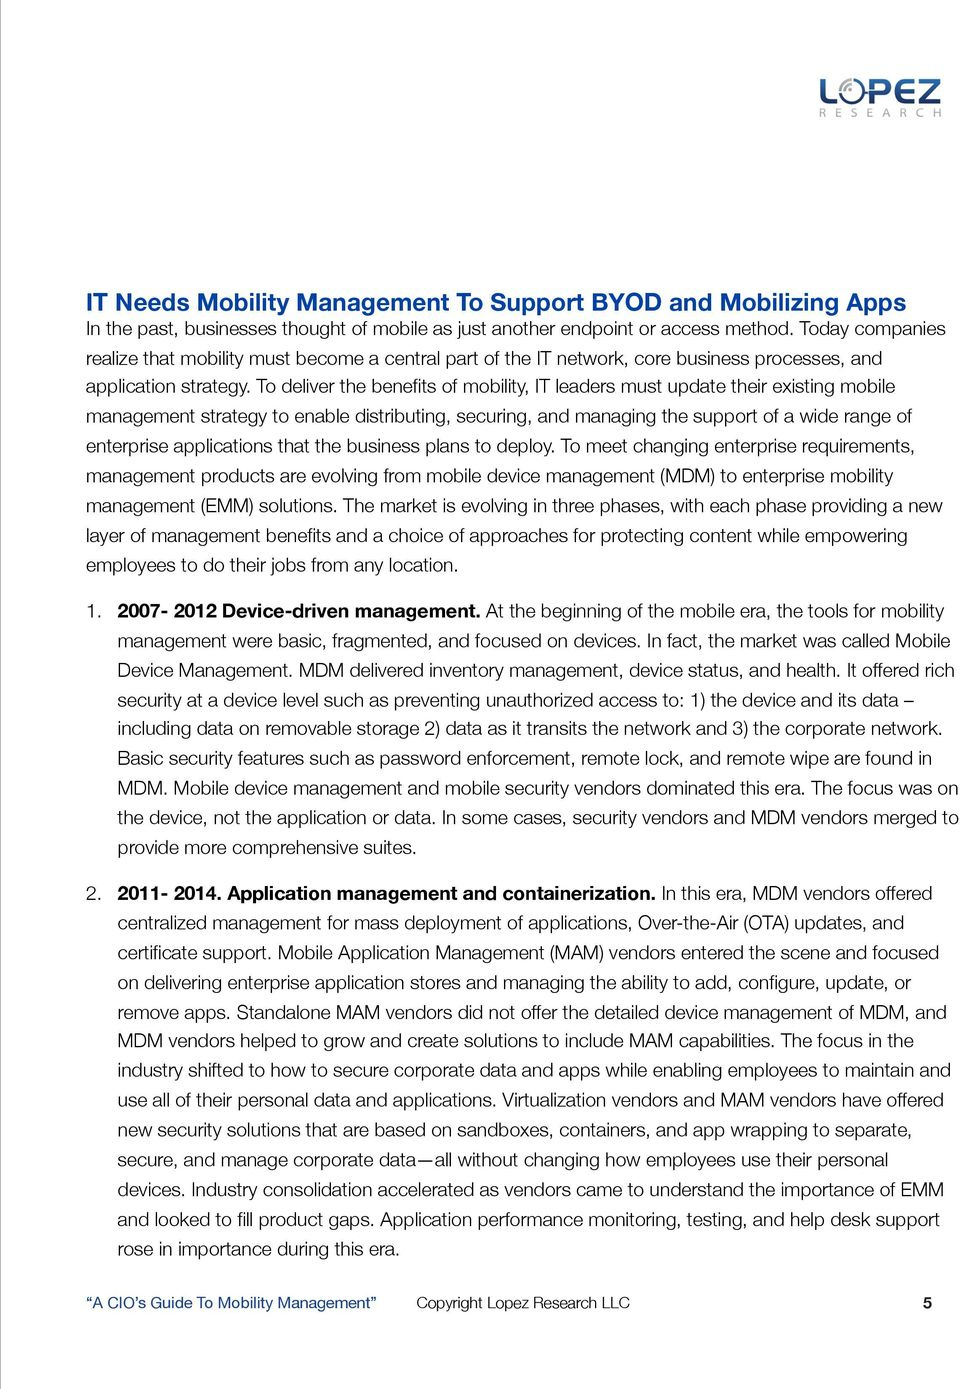 To deliver the benefits of mobility, IT leaders must update their existing mobile management strategy to enable distributing, securing, and managing the support of a wide range of enterprise